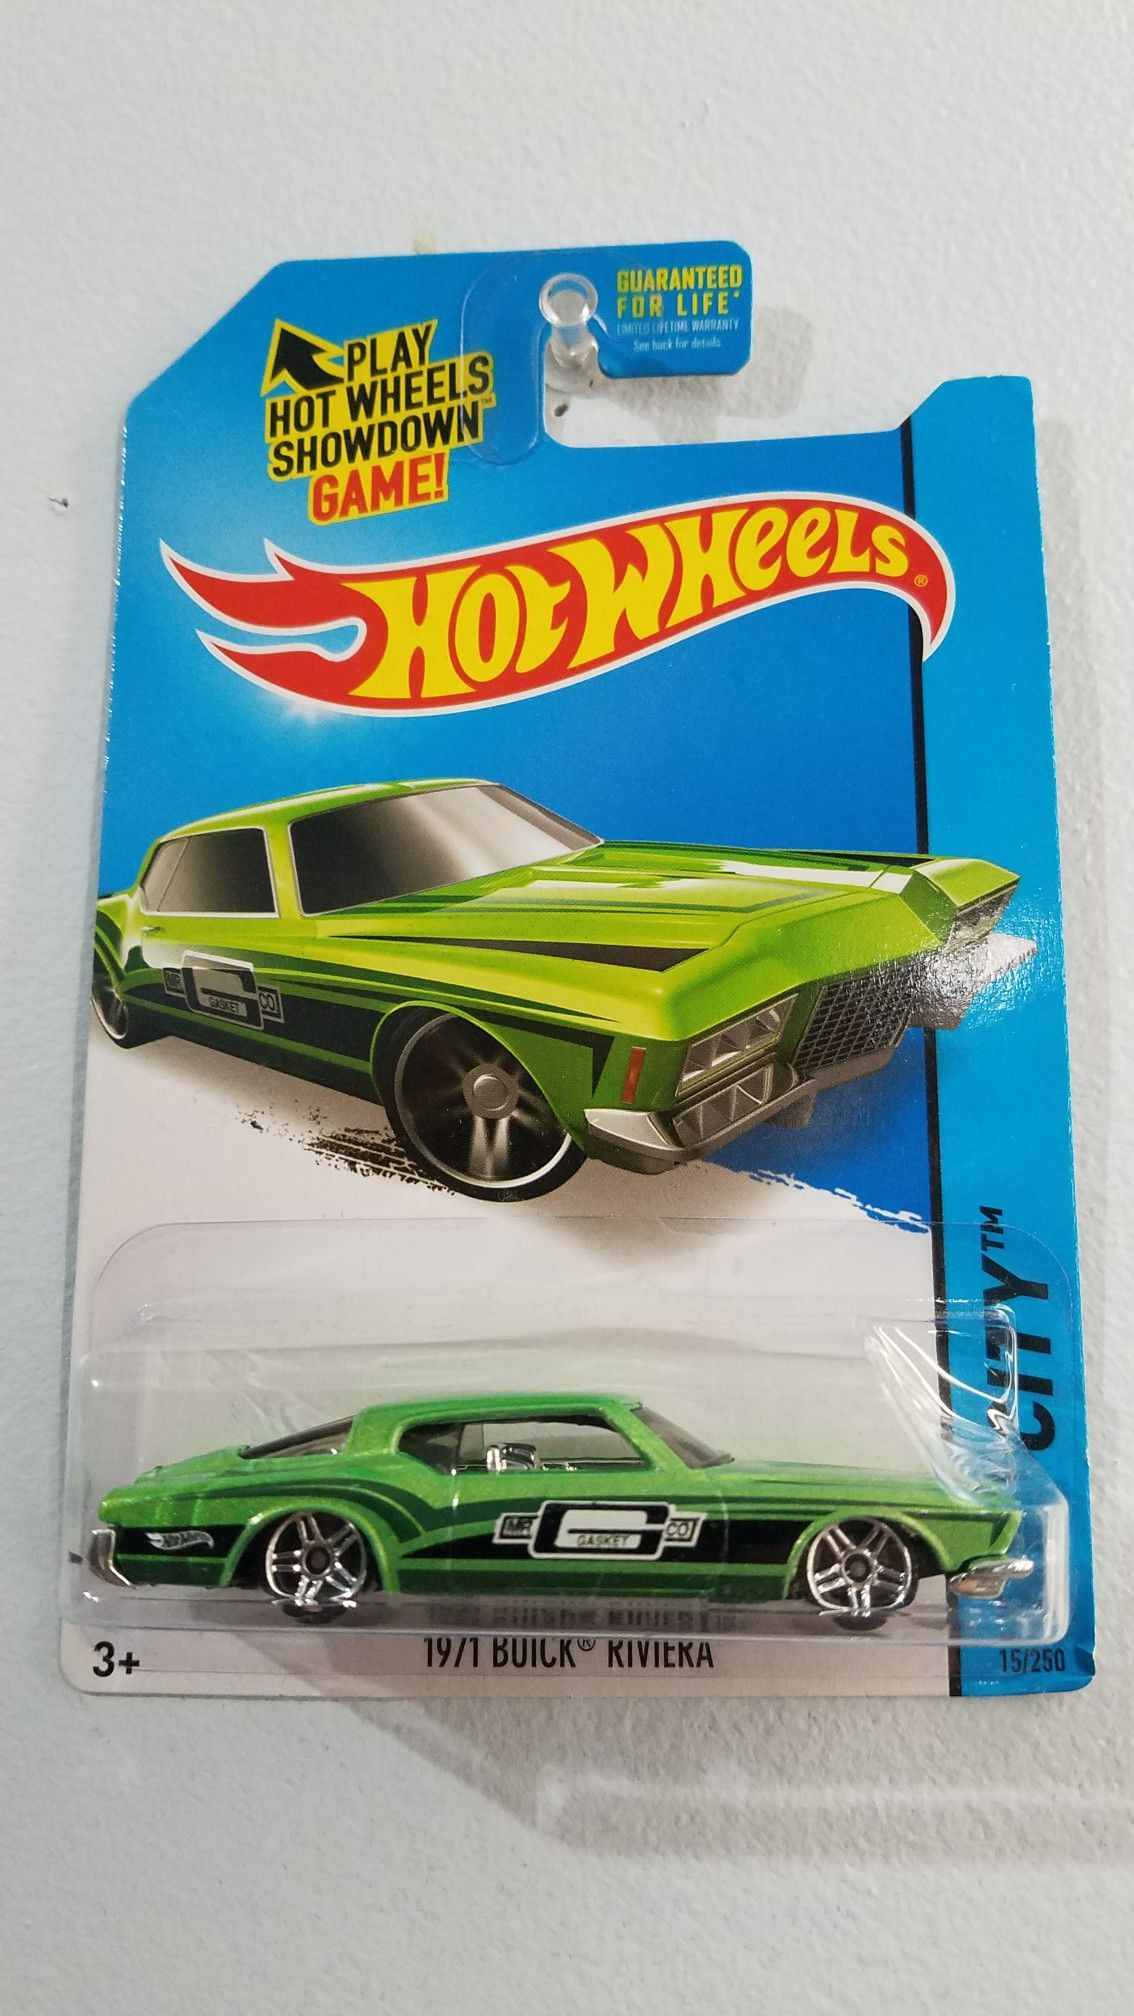 Hot Wheels 1971 Buick Riviera Brought To You By Smart E Hot Wheels Toys Hot Wheels Hot Wheels Cars